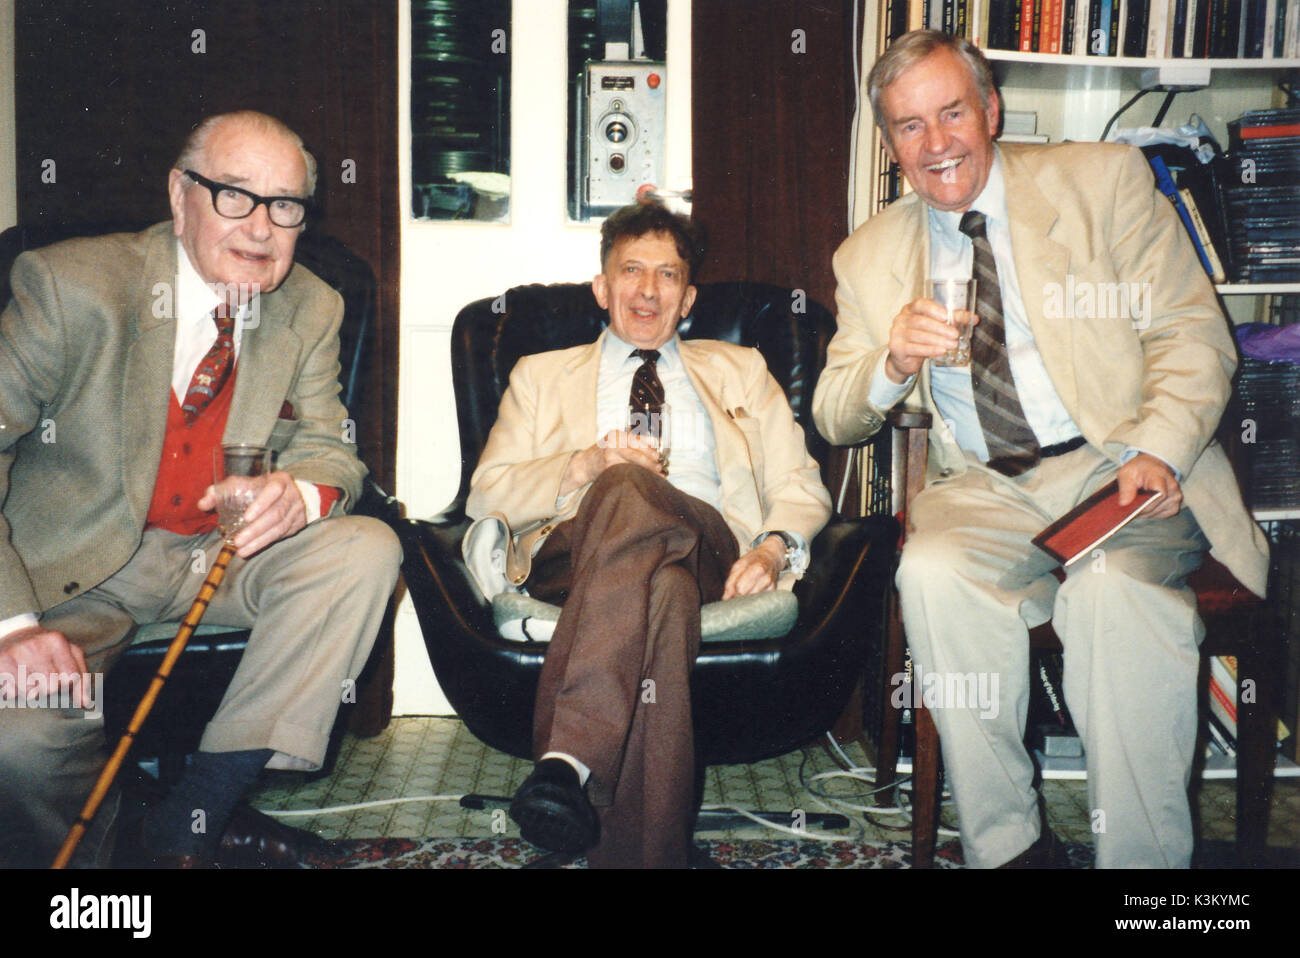 DAVID GILLESPIE [1921 - 2008]  from left - HAROLD FRENCH, actor, producer, theatre and film director, DAVID GILLESPIE film collector, RICHARD BRIERS, actor.  Richard Briers drove his 97 year old friend Harold to film collector David's house in Barnes for Harold to see himself as a young actor in a screening of an original 35mm nitrate print of  the 1932 film 'When London Sleeps', screened on the Westar projector seen behind through the window - Stock Image